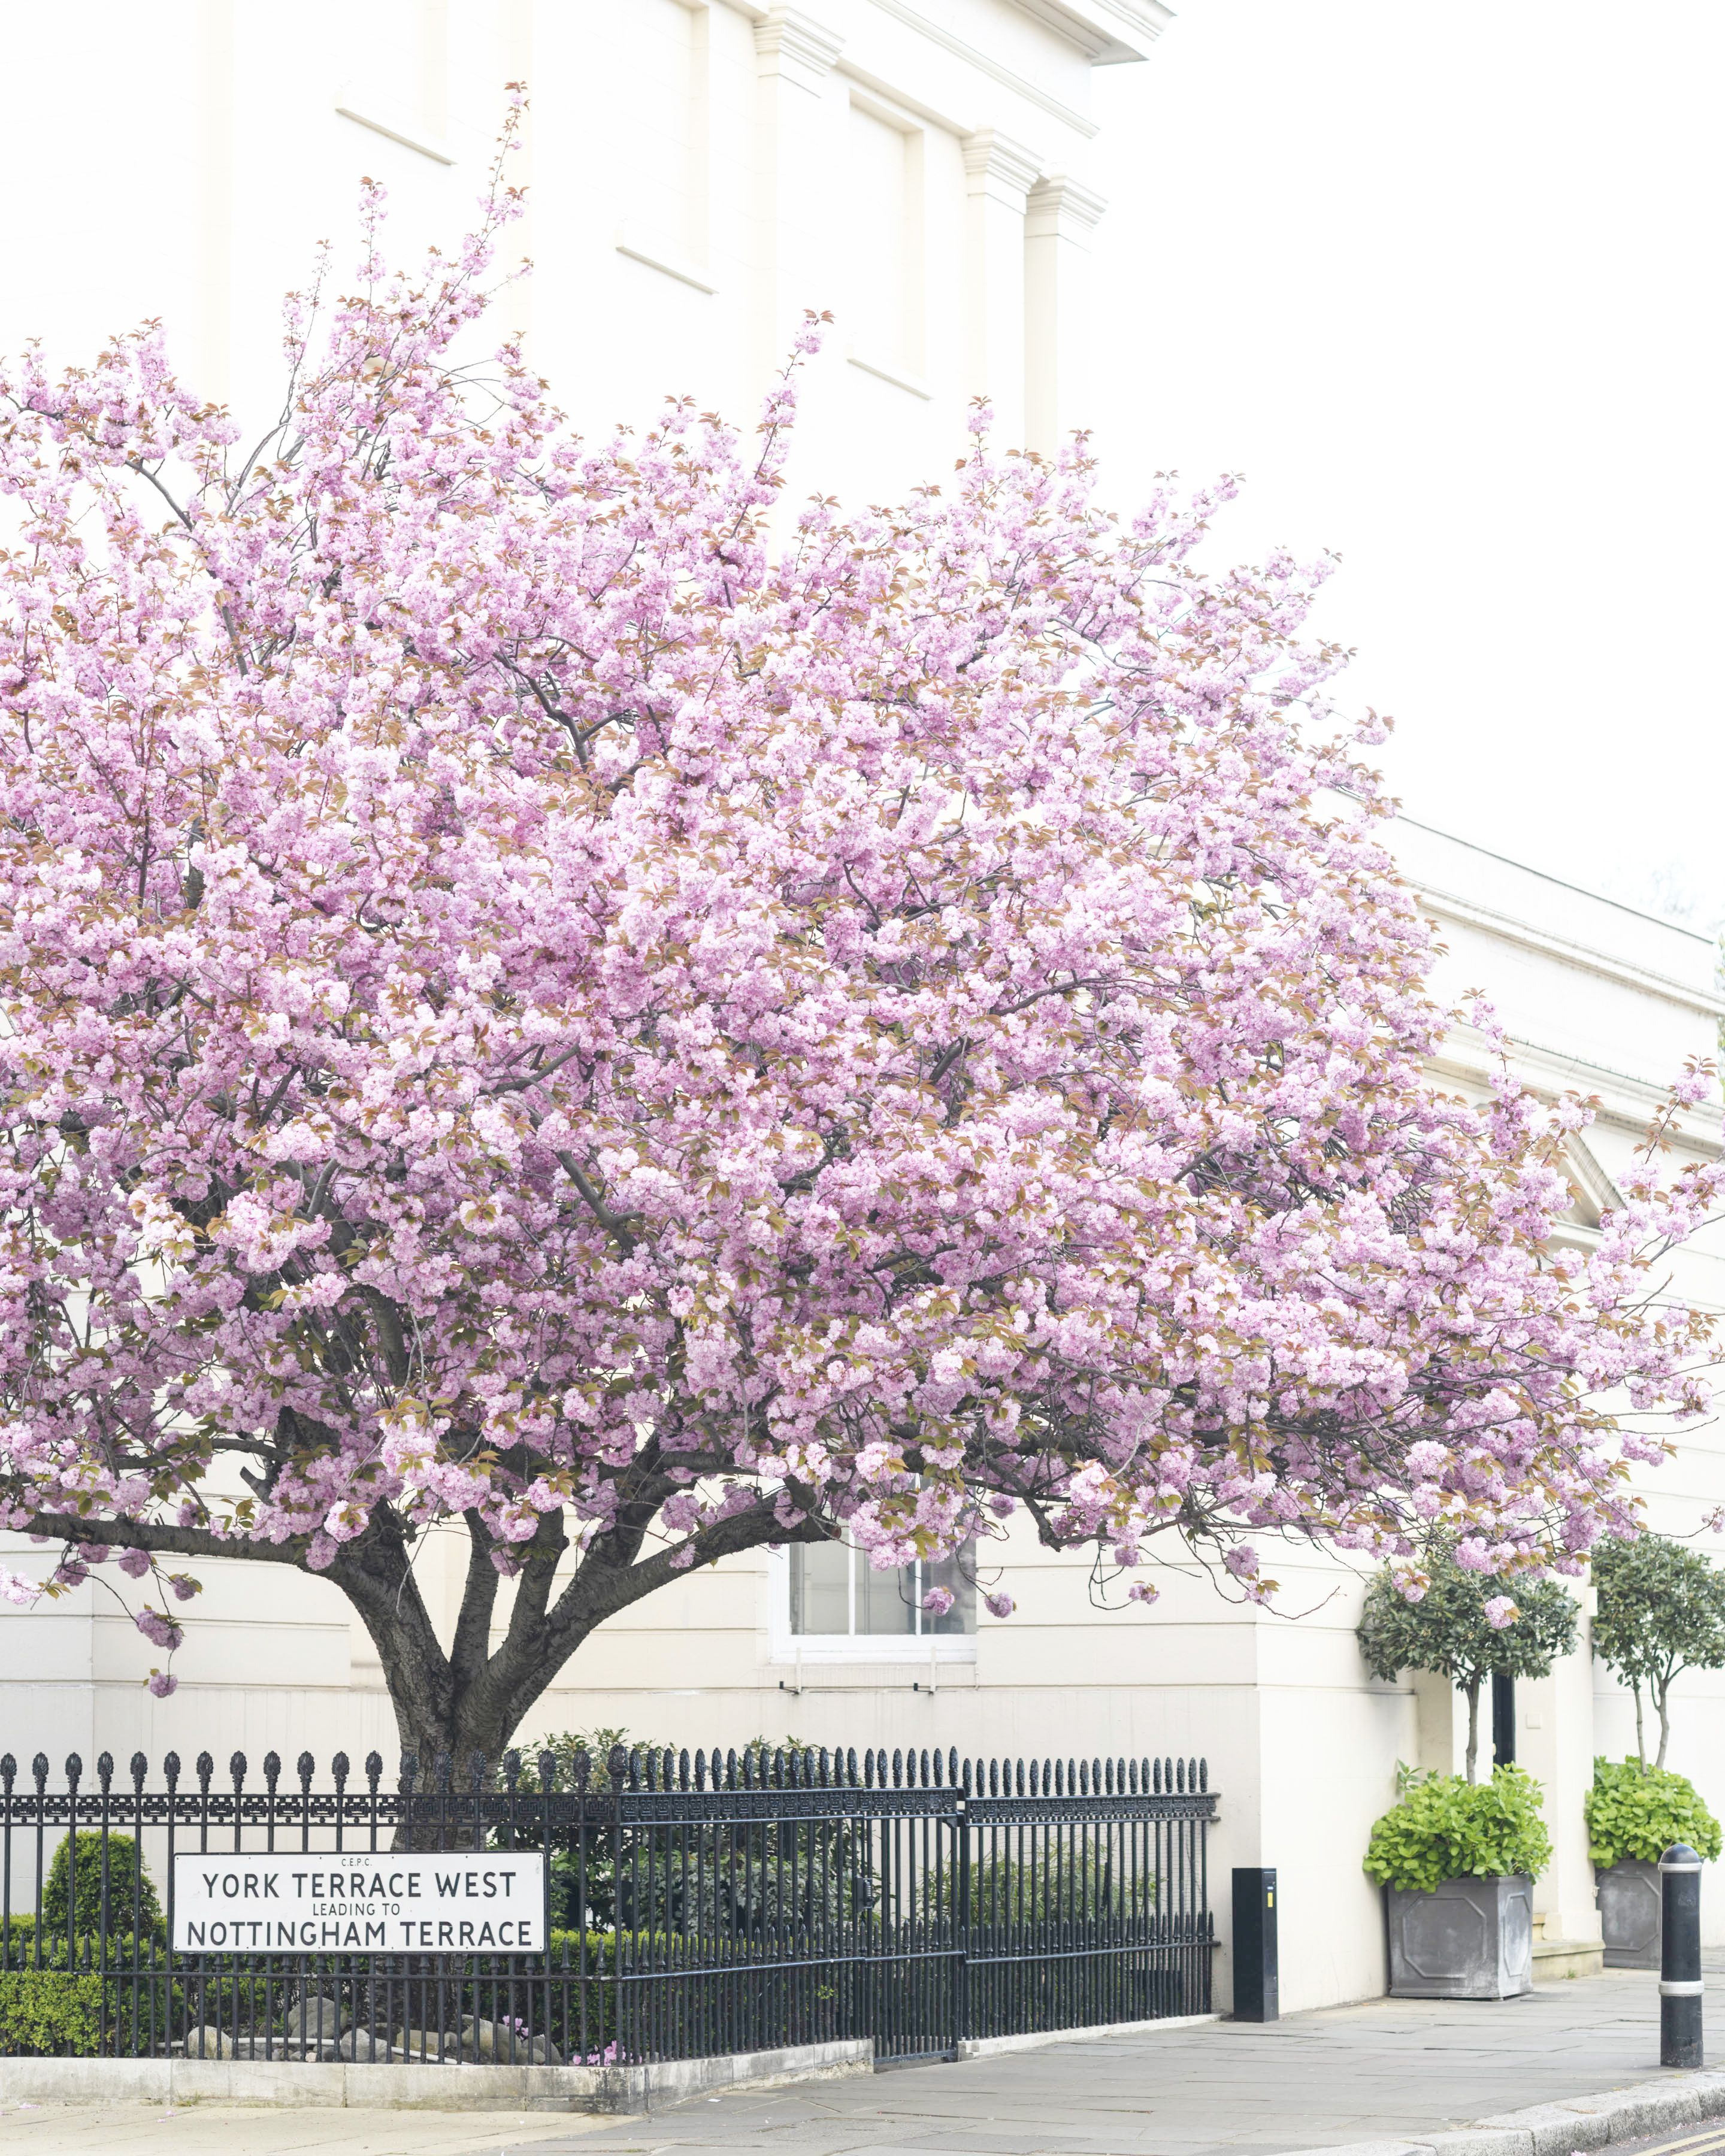 London Photography Cherry Blossoms At York Terrace England Etsy Gallery Wall Prints London Photography Large Wall Art